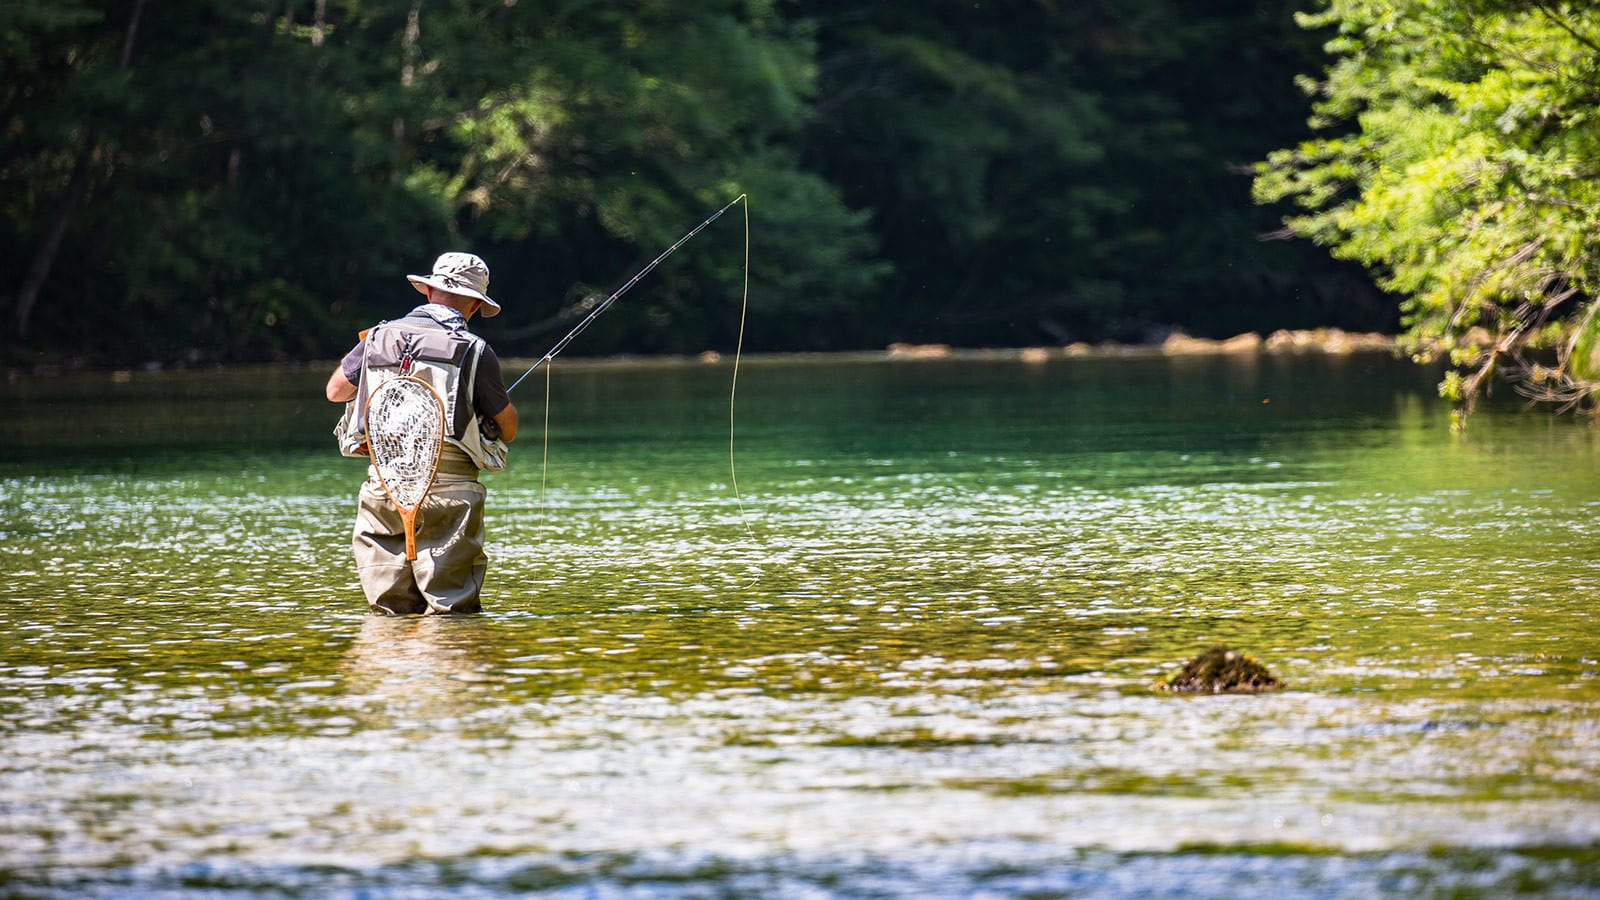 Experience freshwater fishing